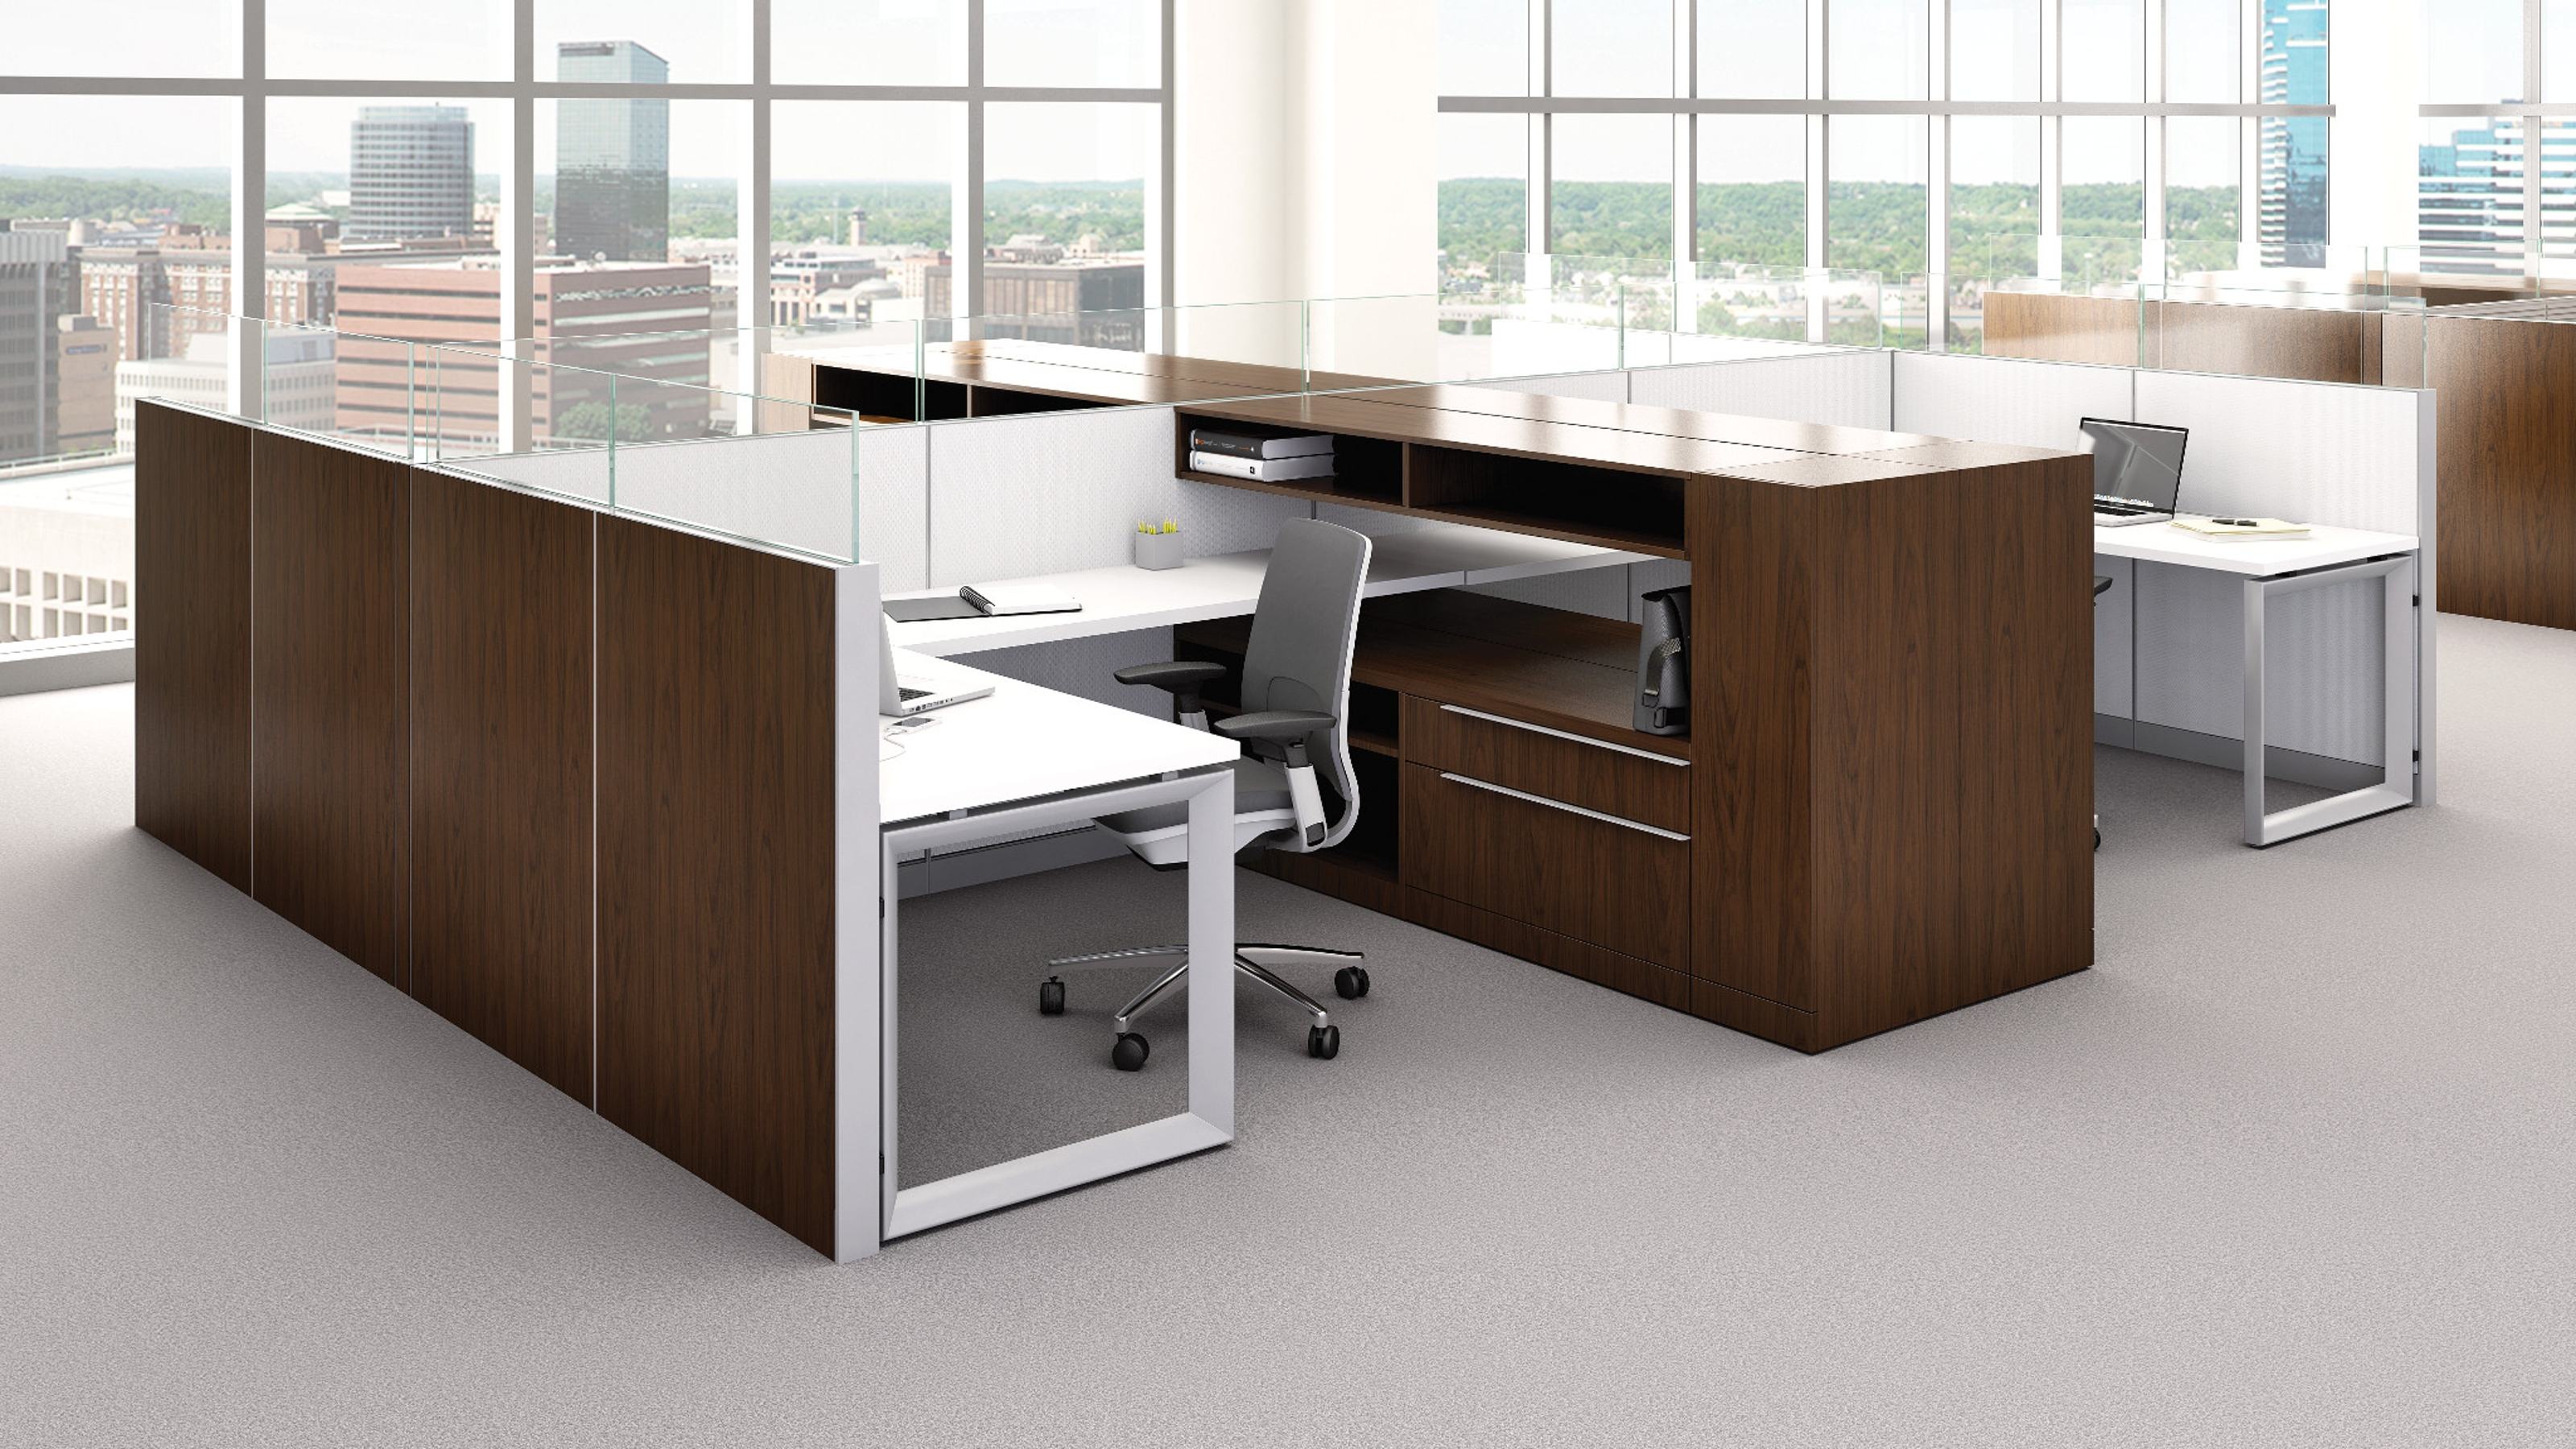 montage office workstation  panel systems  steelcase -